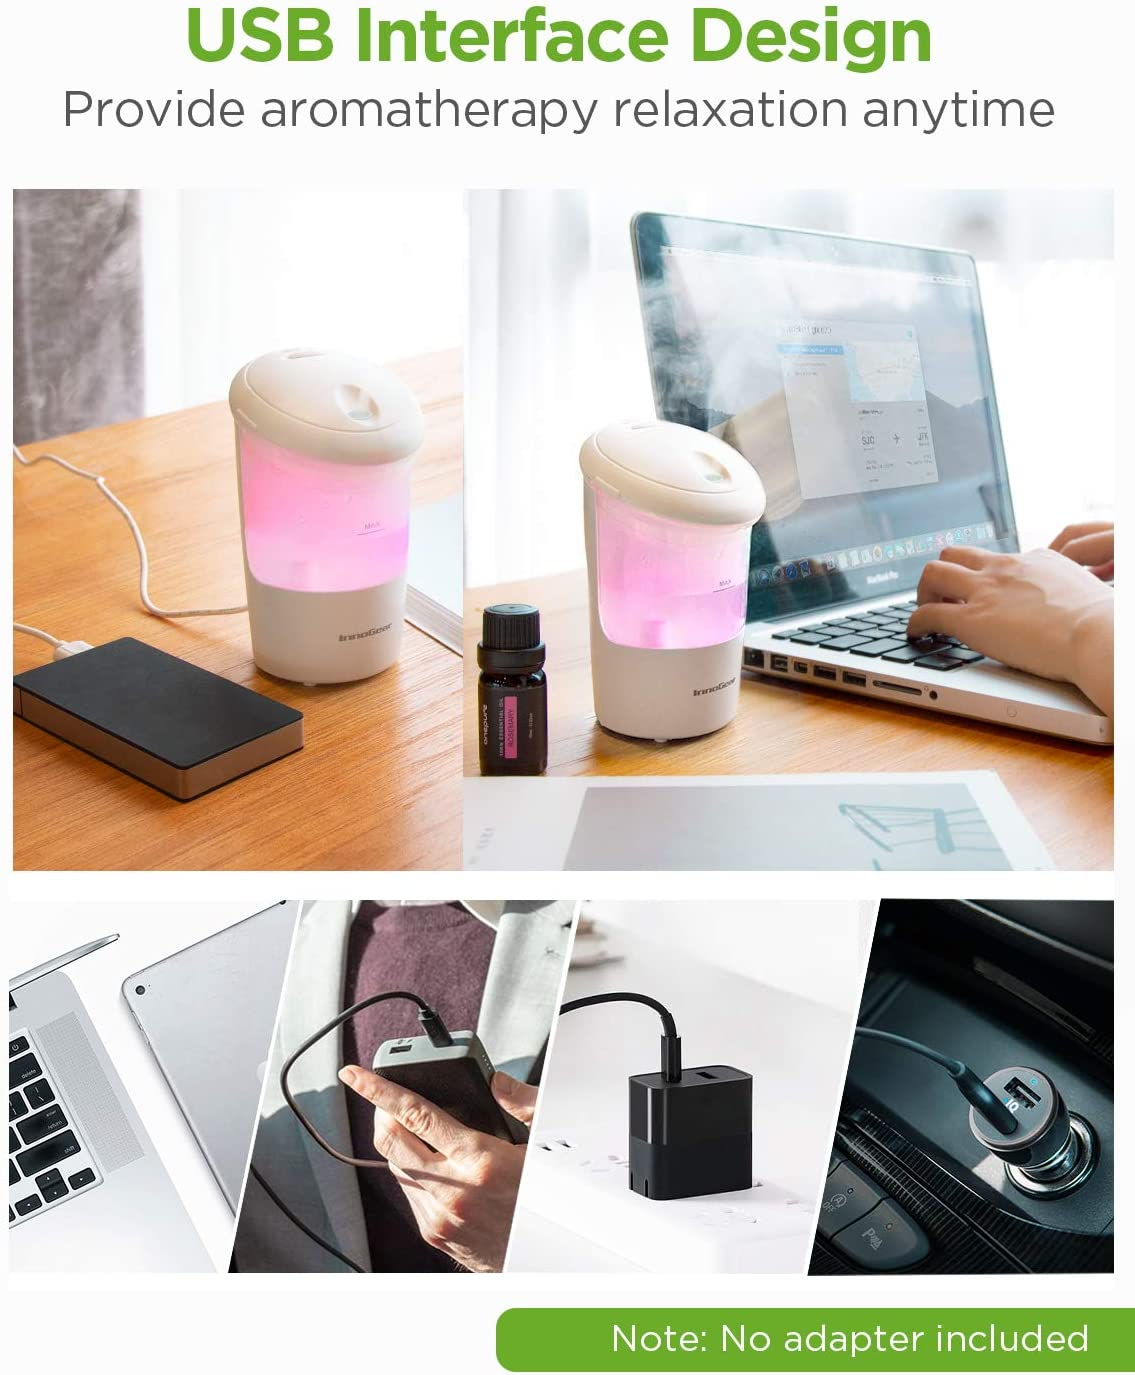 Black USB Essential Oil Diffuser Ultrasonic Car Humidifier Aromatherapy Diffusers with Intermittent//Continuous Mist for Office Travel Home Vehicle InnoGear Car Diffuser